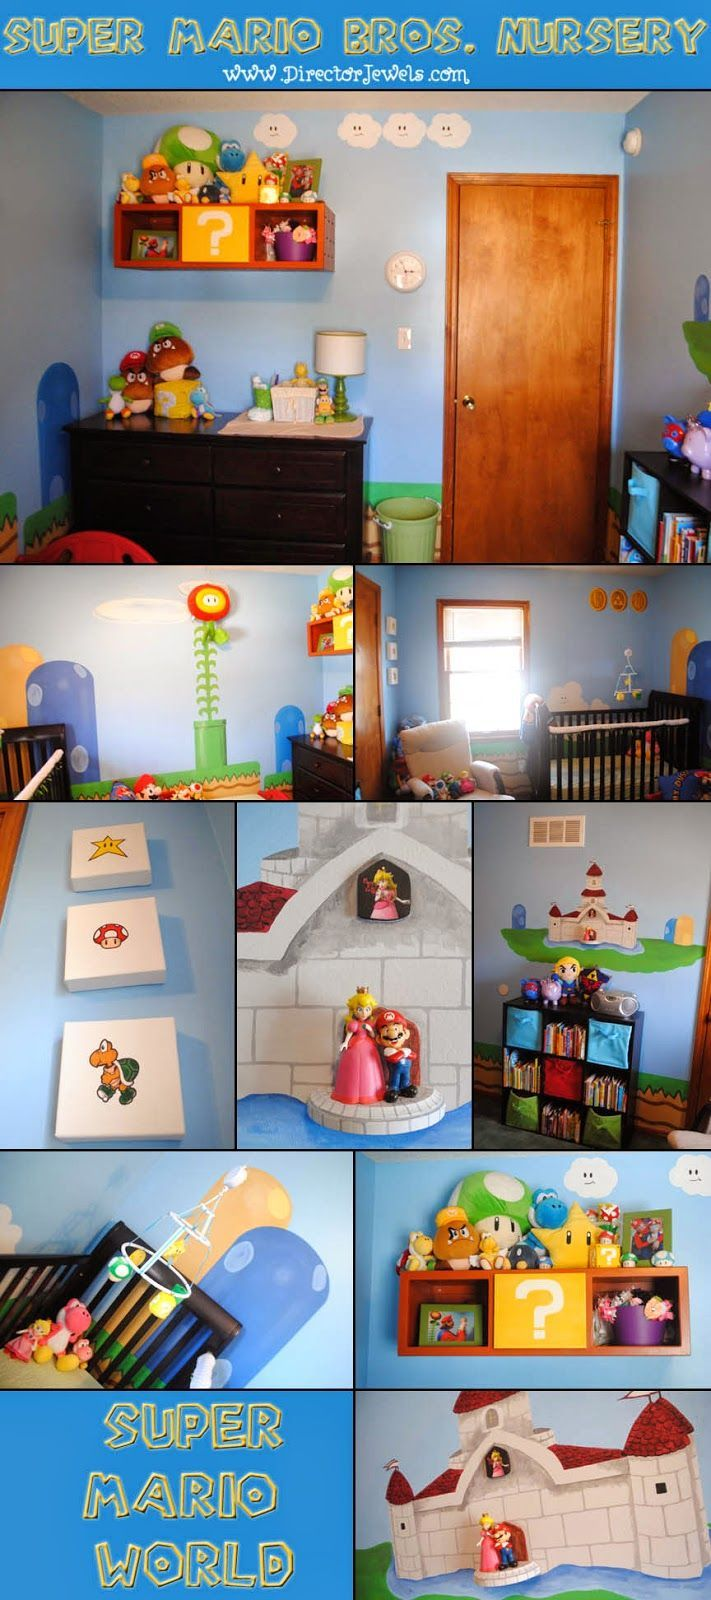 Mario Nursery Inspiration at directorjewels.com Super Mario Bros, Nintendo Theme DIY Decor and Ideas #Nintendo #SuperMarioBros